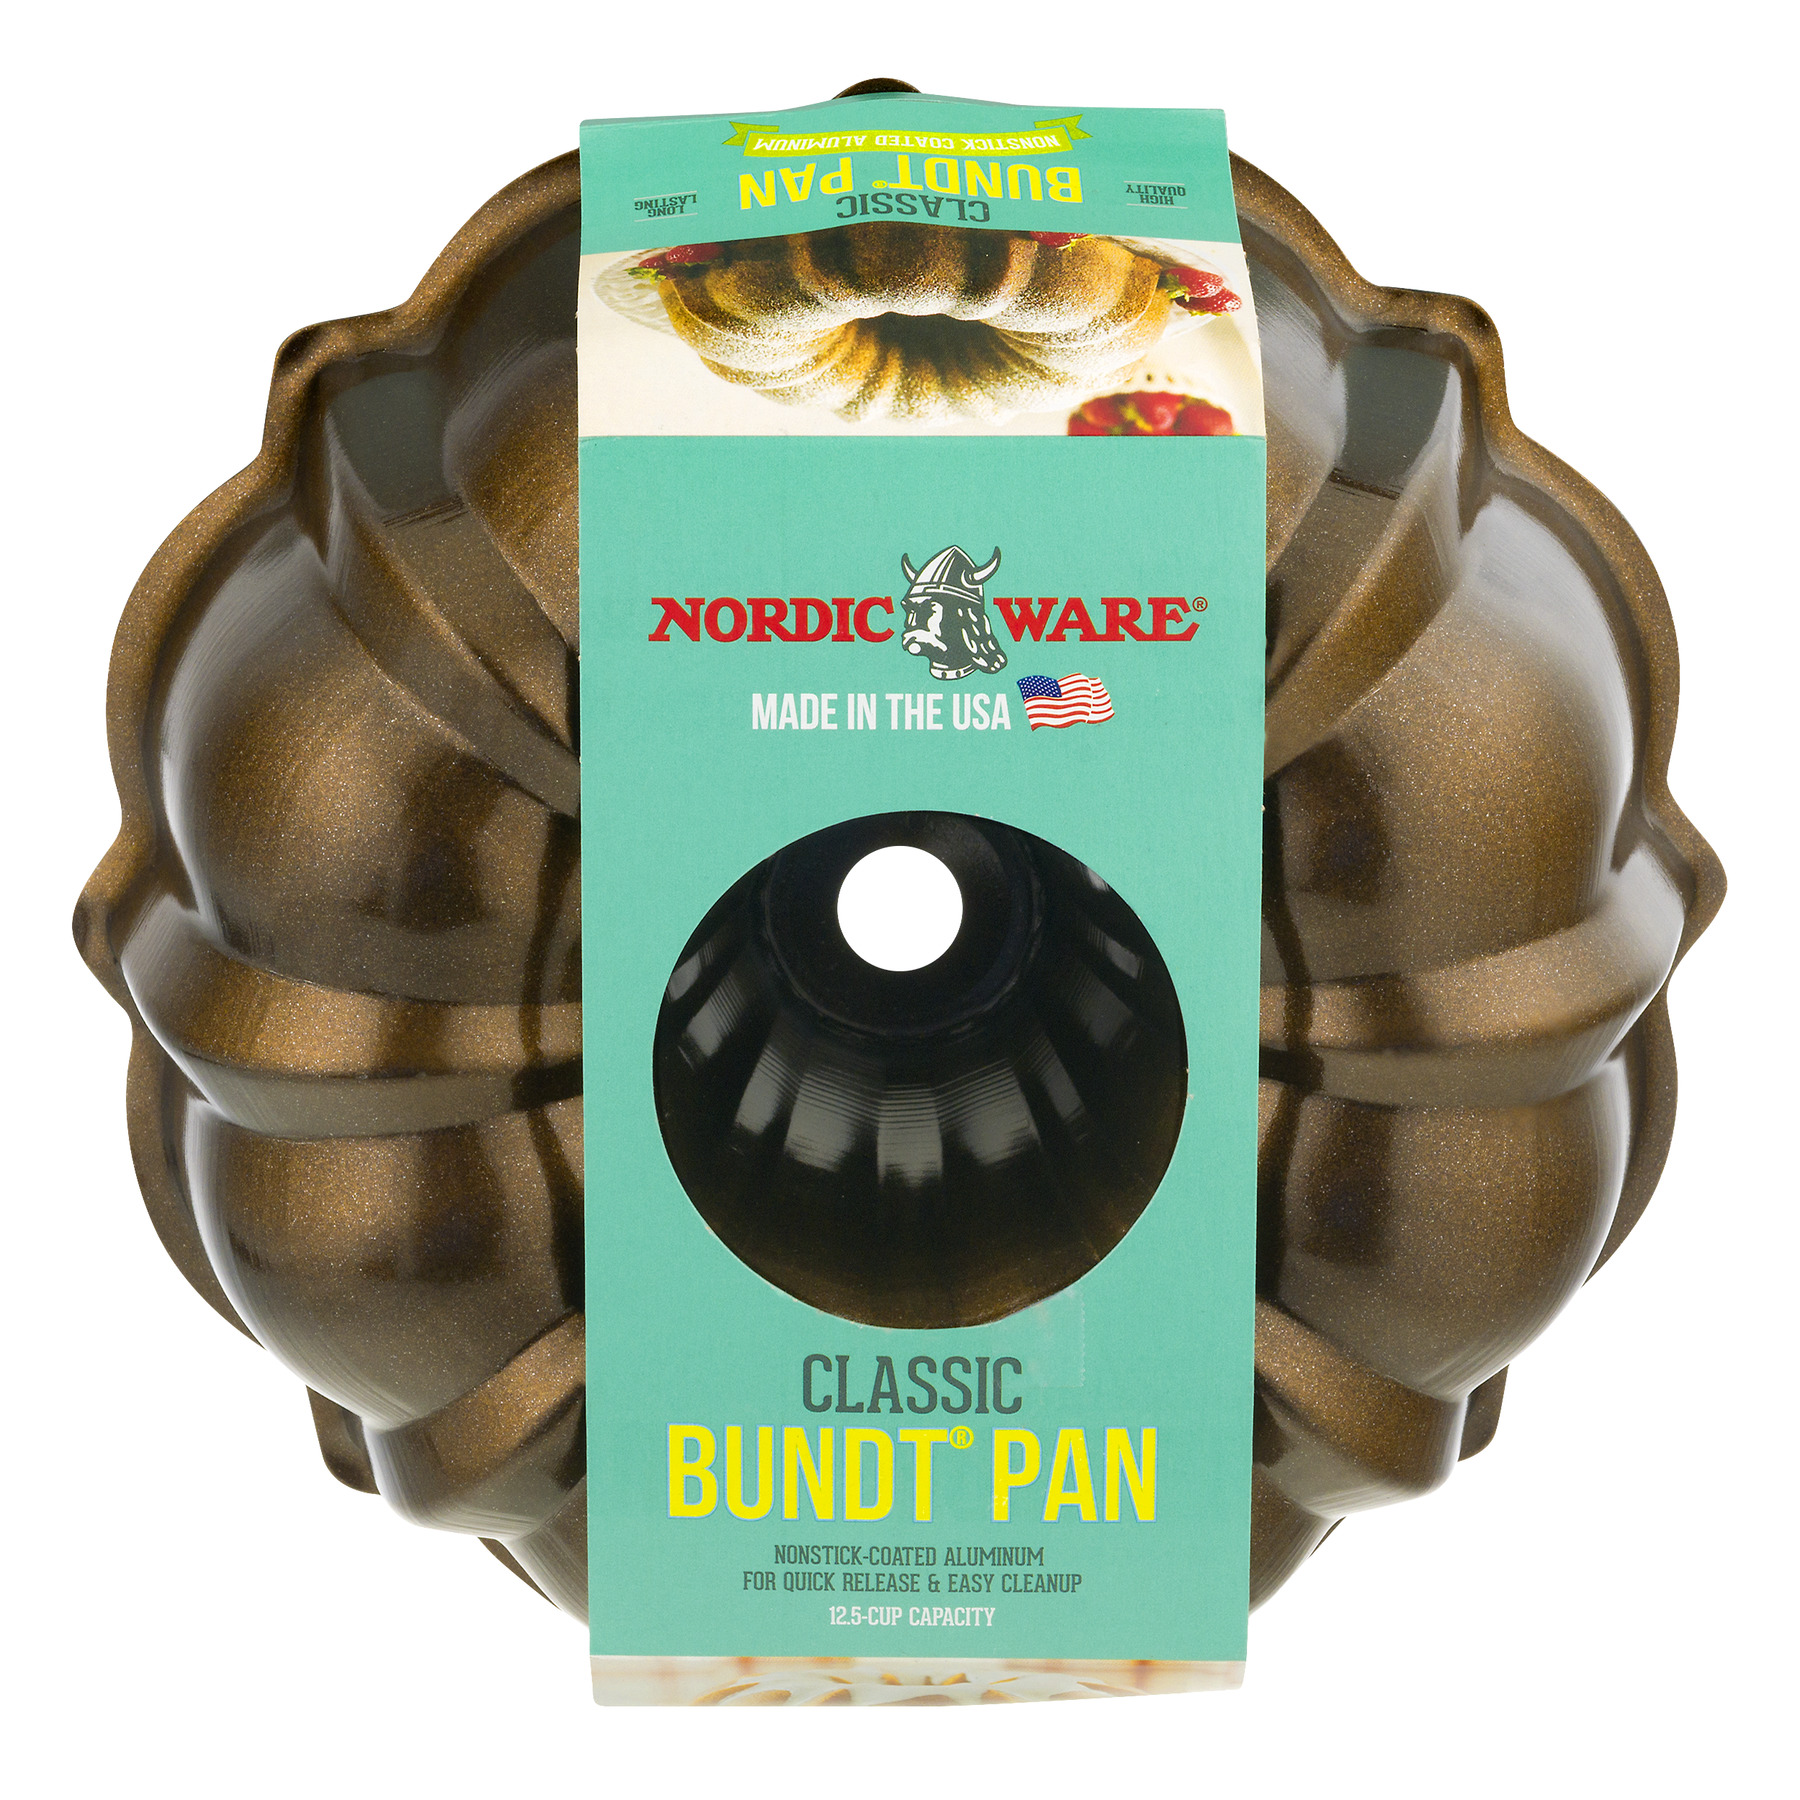 Nordic Ware Classic Bundt Pan, 1.0 CT Color May Vary